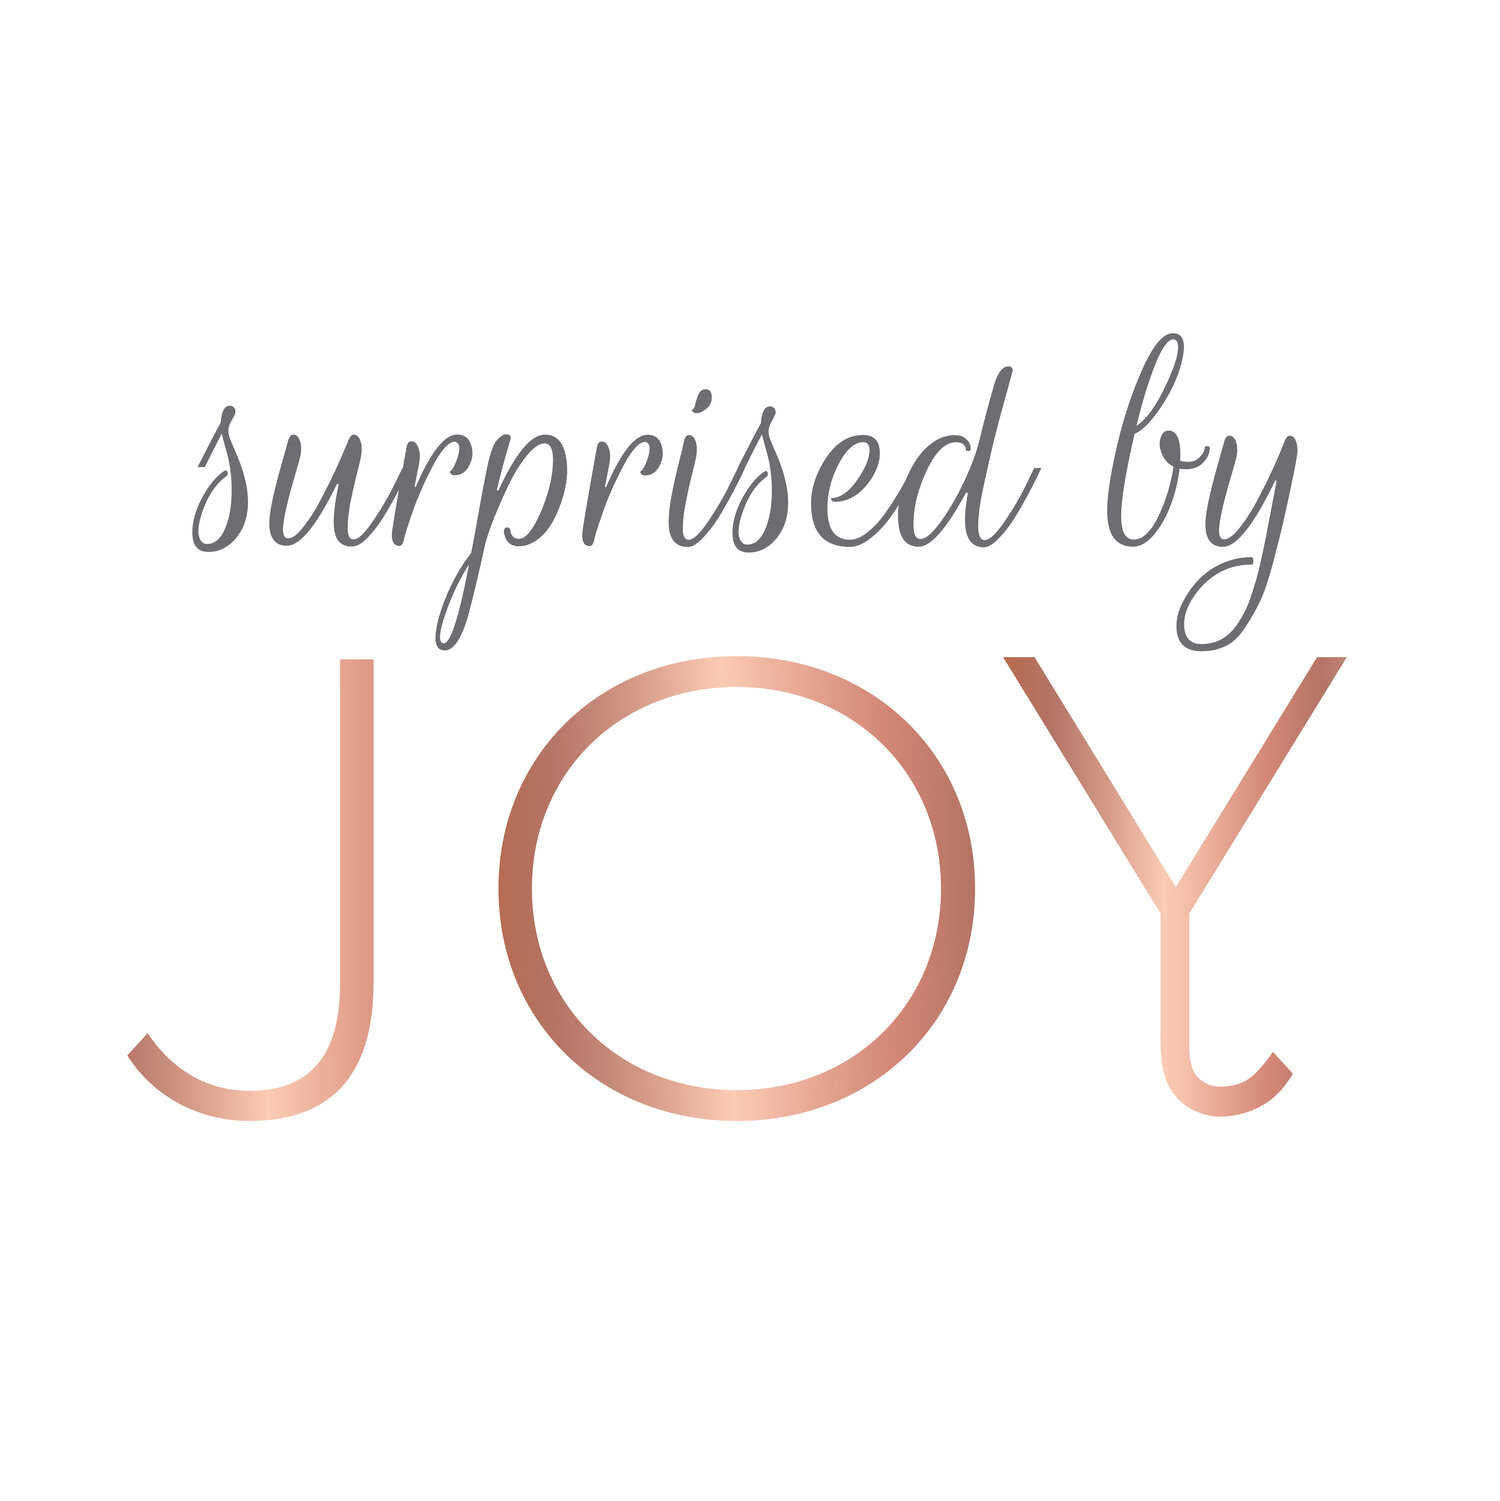 Surprised by Joy LLC